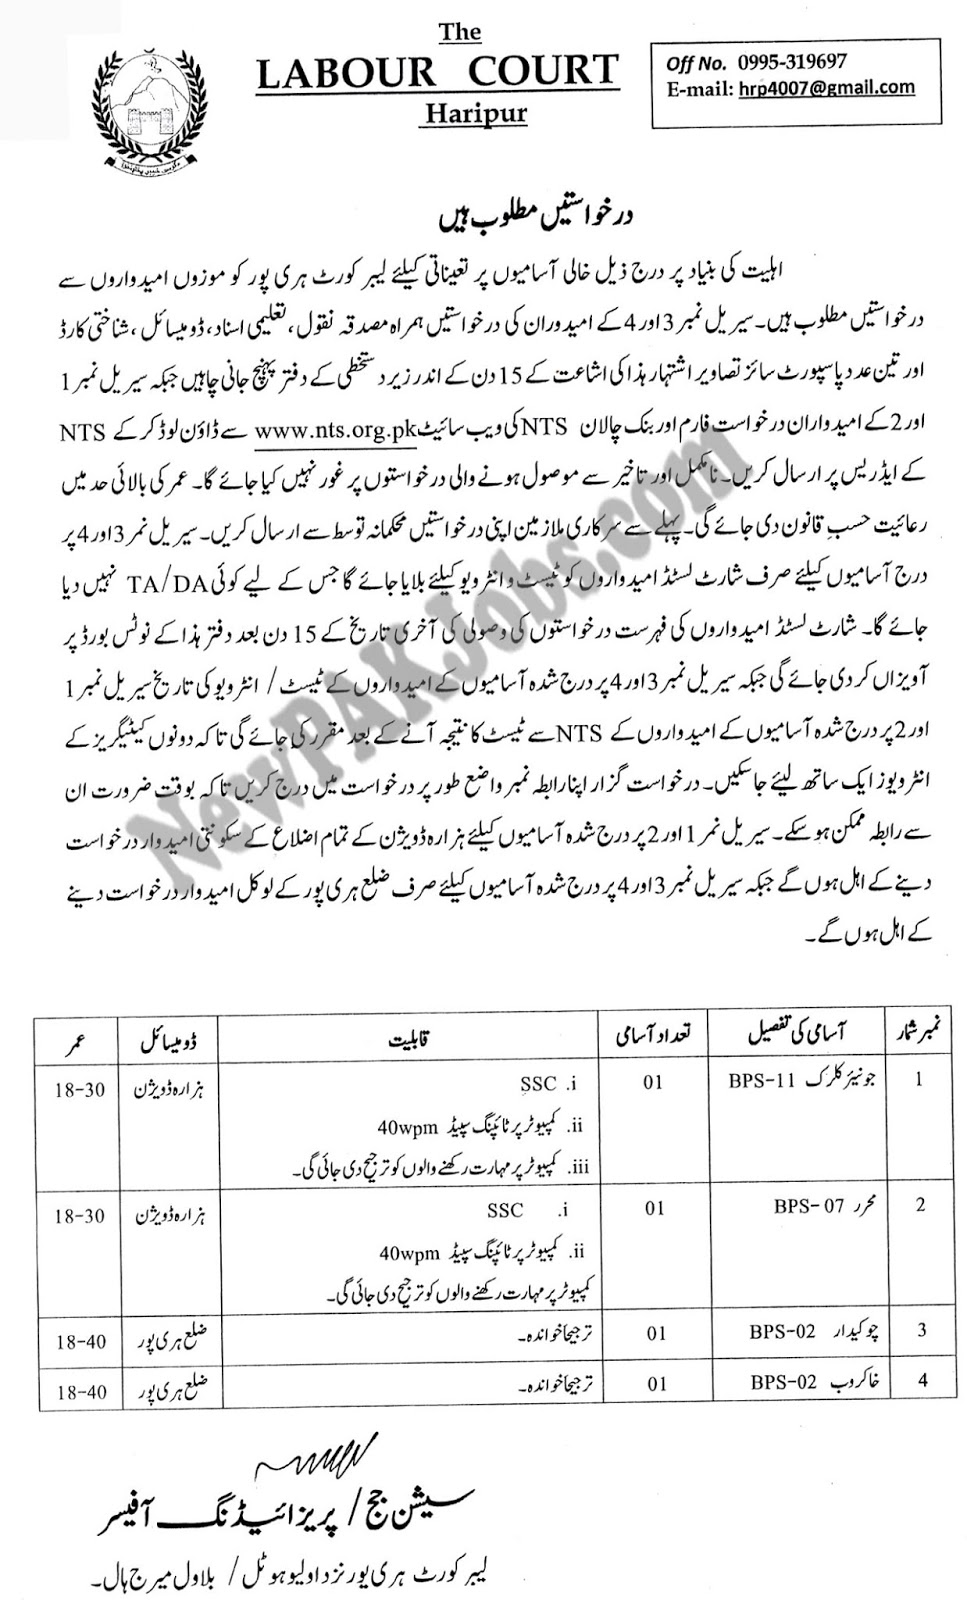 Labour-Court-Haripur-Latest-New-NTS-Jobs-2018